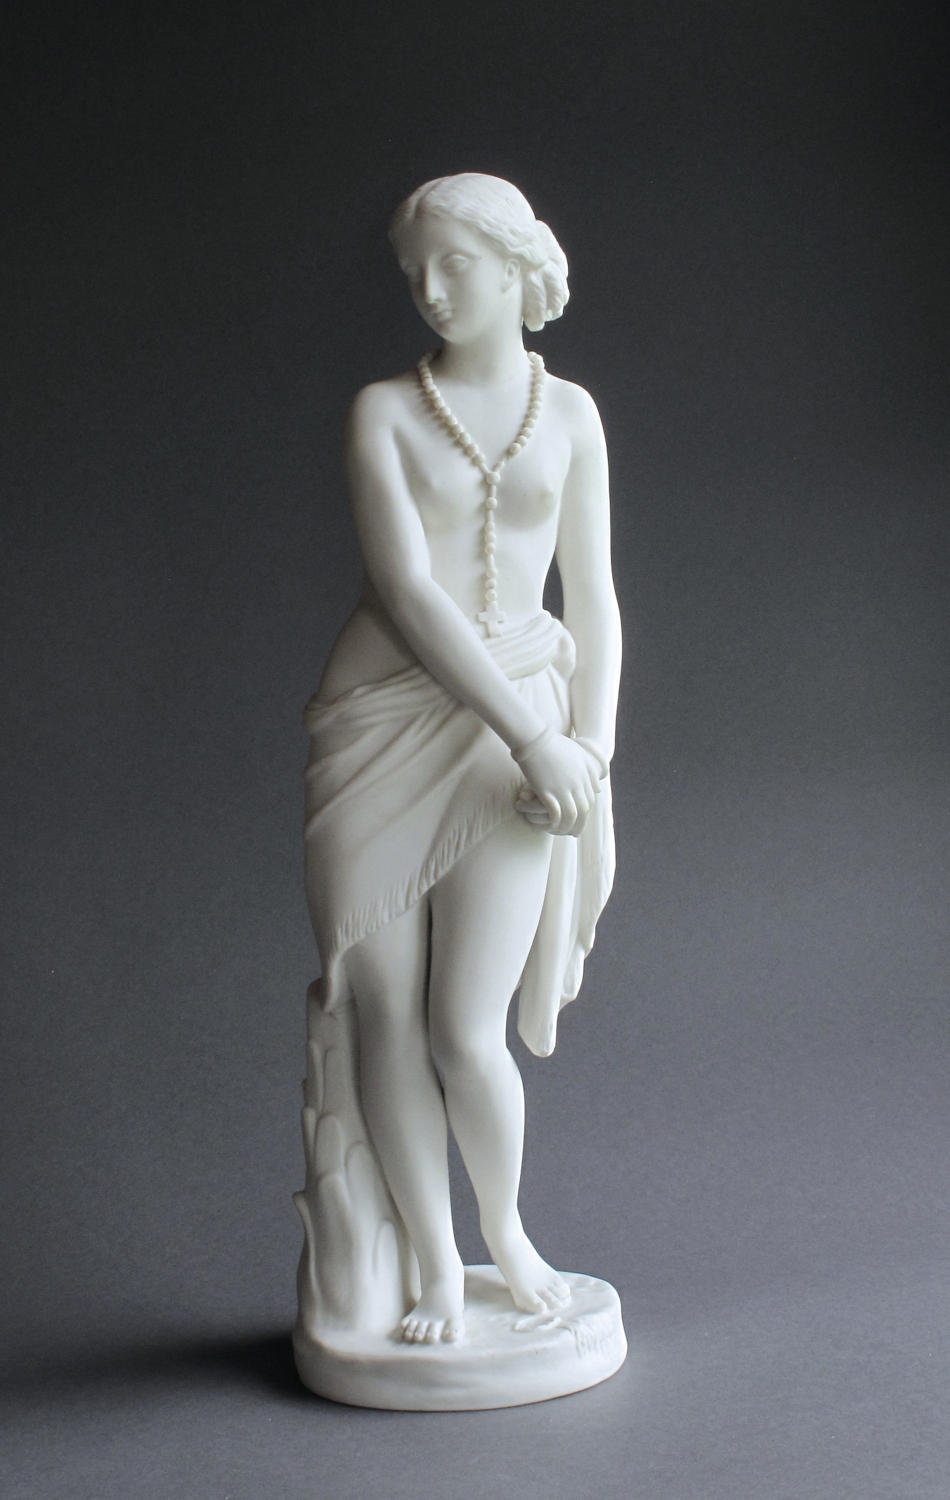 A Parian figure of the Abyssinian Slave by Minton